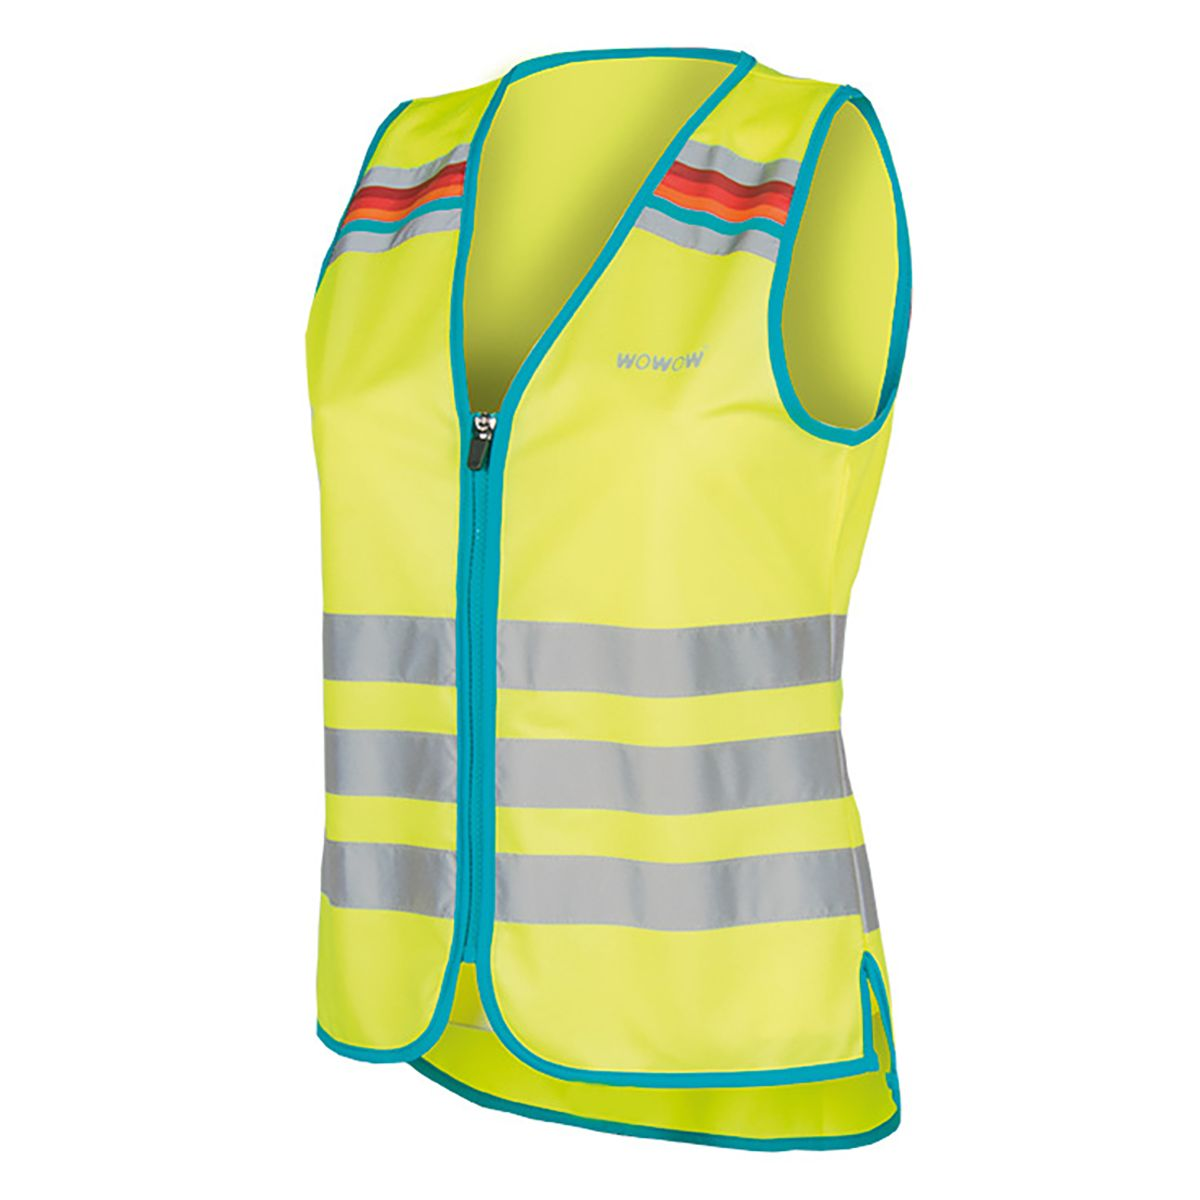 WOWOW LUCY JACKET YELLOW women's reflective vest | Vests